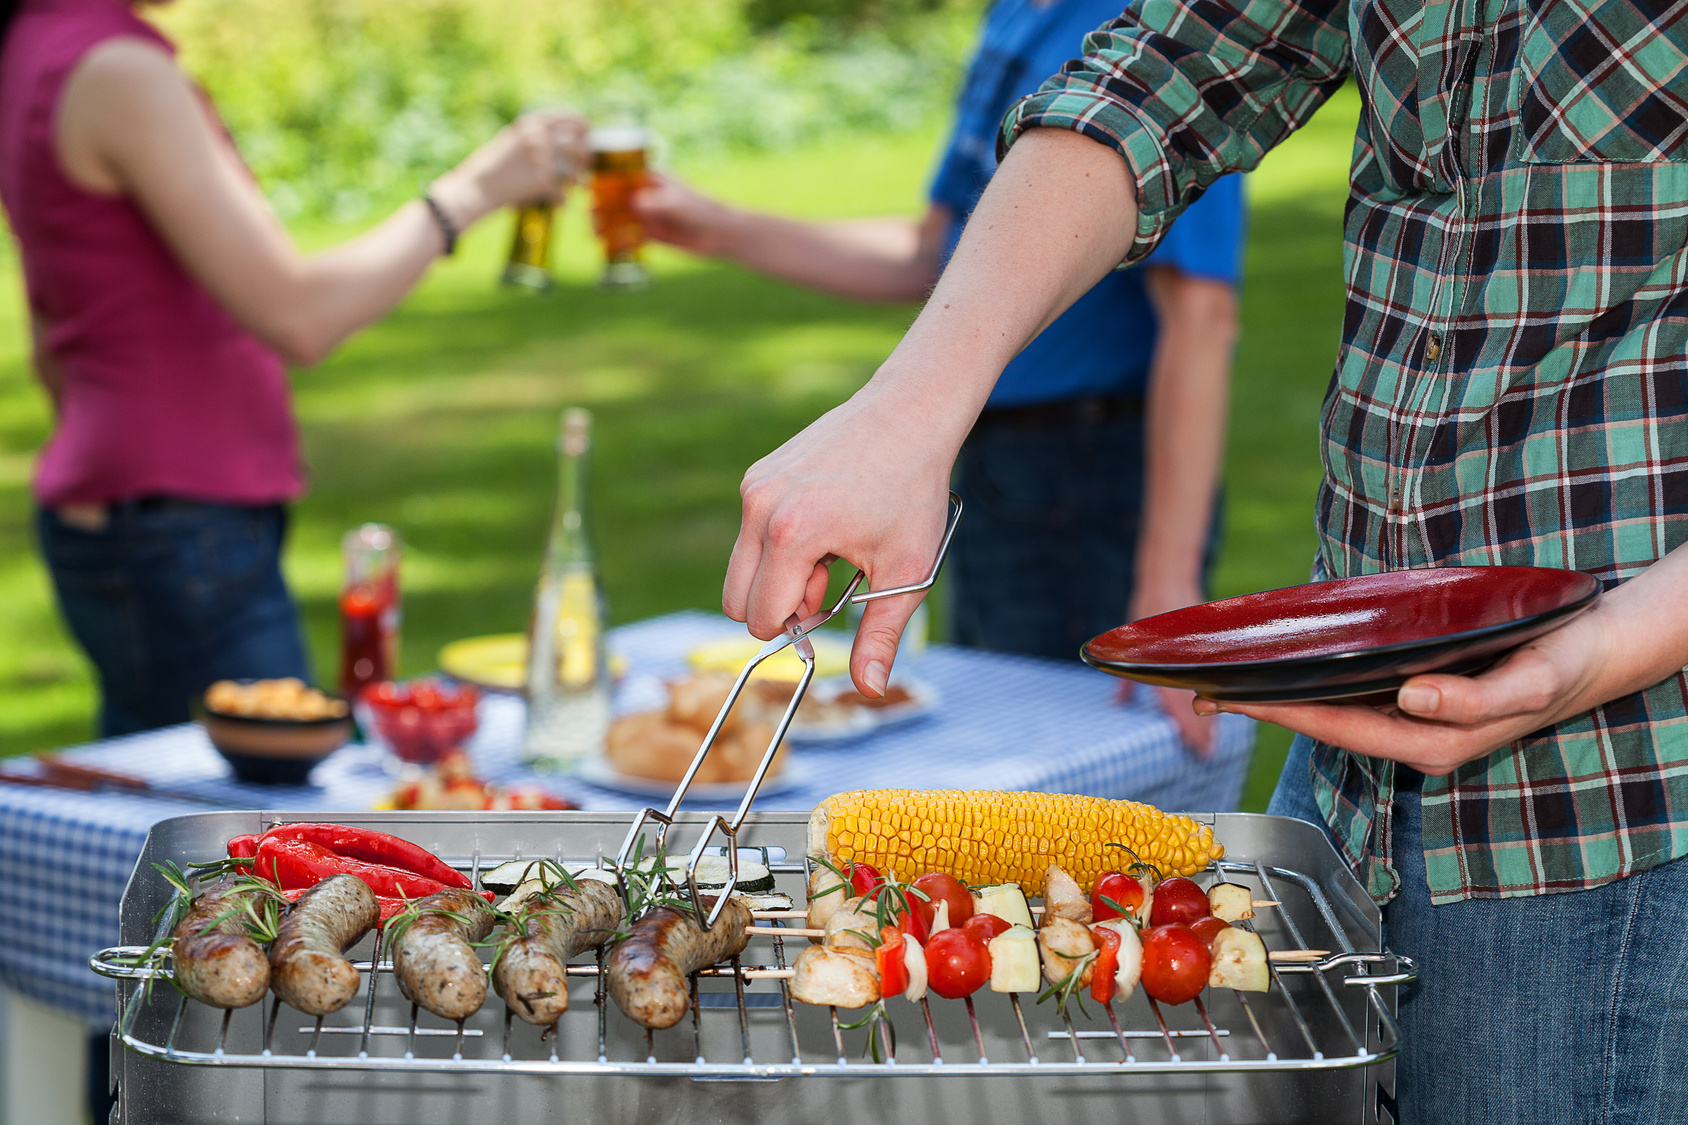 A summer garden paty with grilled snacks and drinks